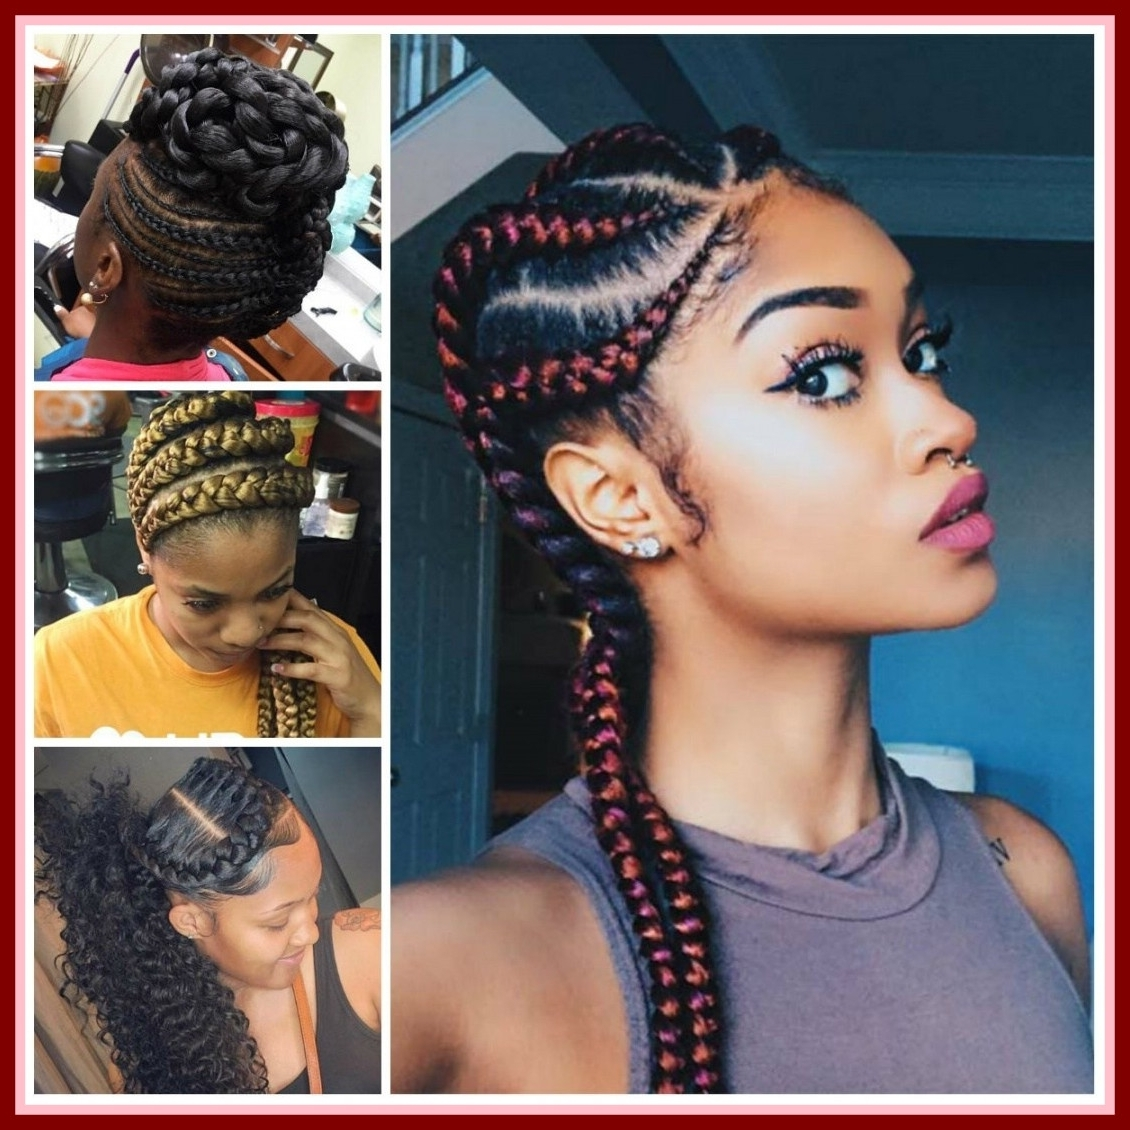 Astonishing African Braids Hairstyles The Big River Picture For Pertaining To Fashionable African Braided Hairstyles (Gallery 5 of 15)